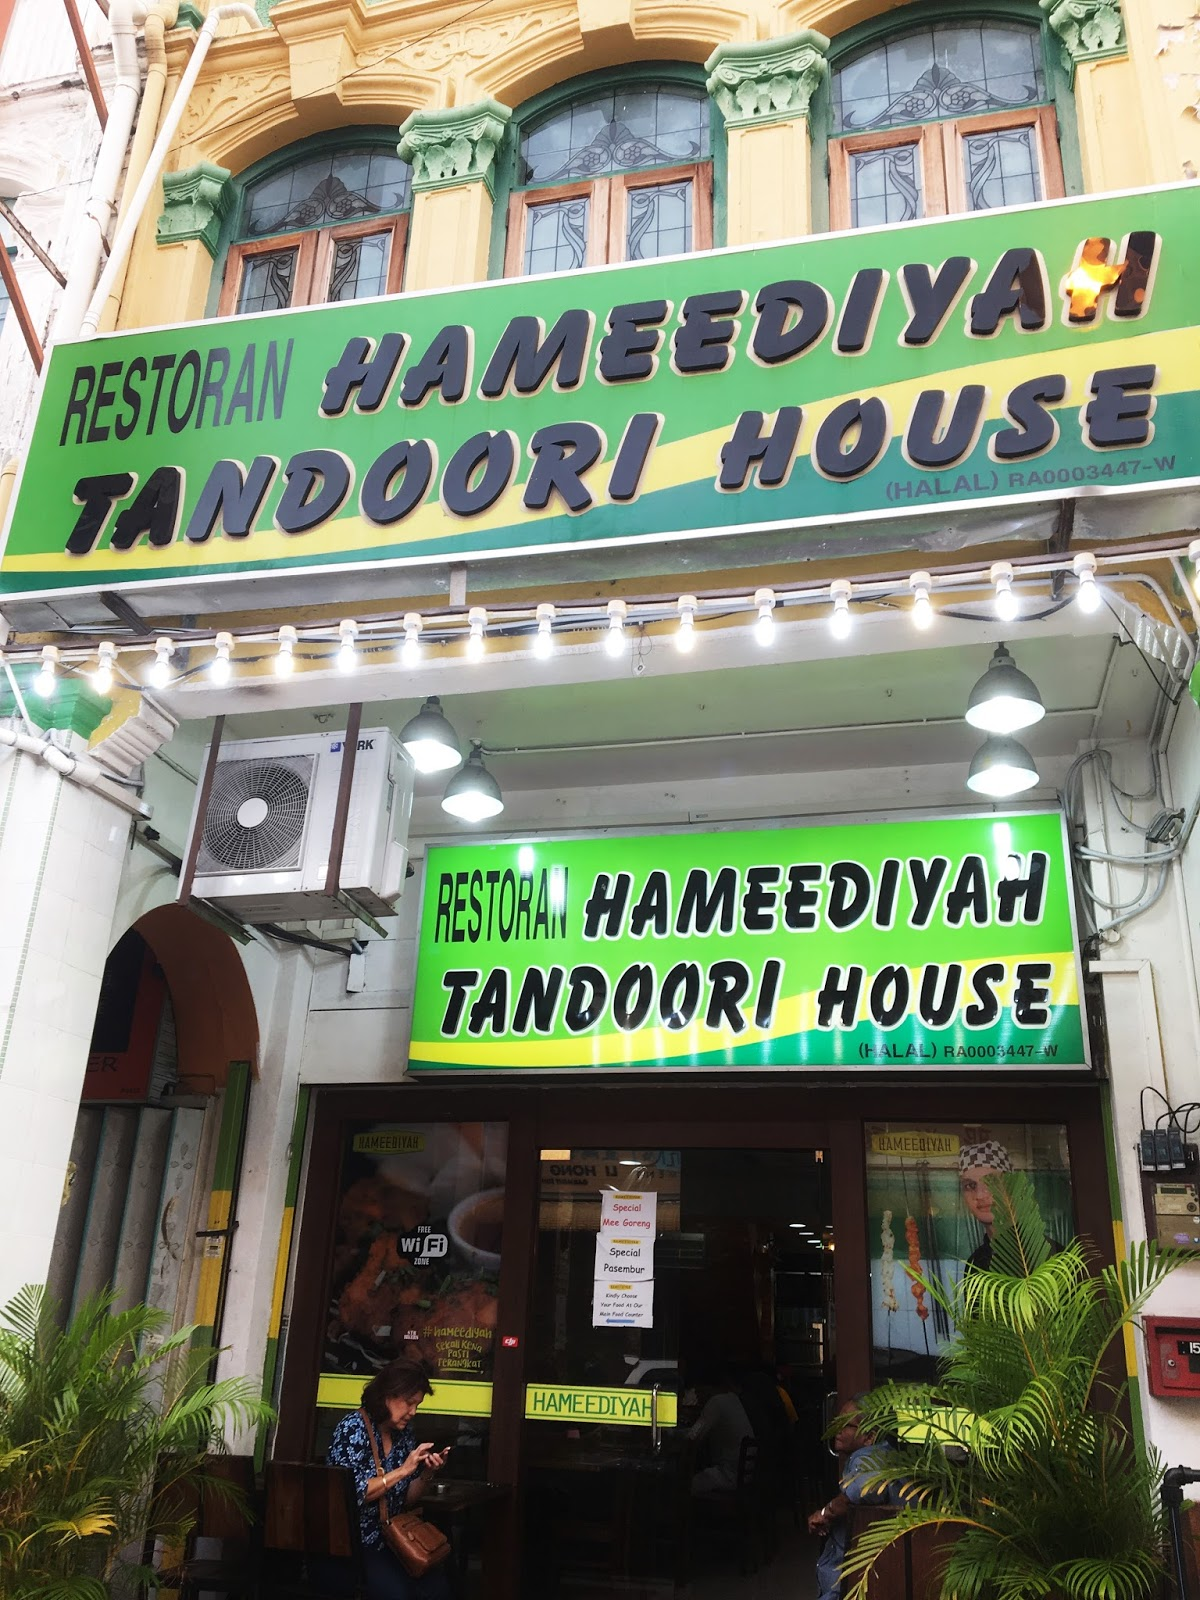 Short Vacay In Penang: Have Chezilious Nan & Superb Beriani At Hameediyah Tandoori House Restaurant, Penang